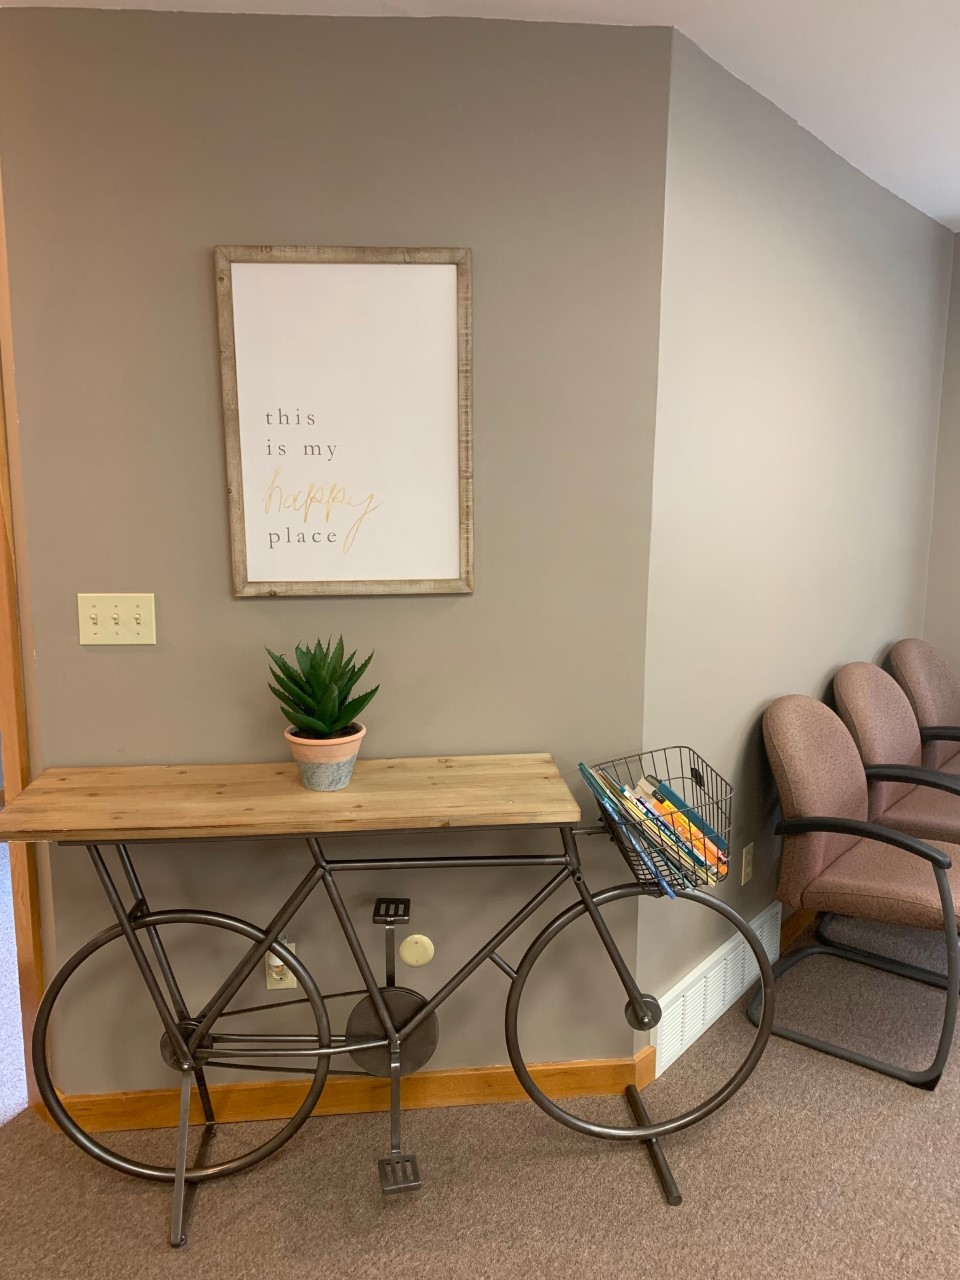 Fola Lasisi opens a health care practice where she hopes patients will feel is a safe place to work toward a healthy way of thinking.